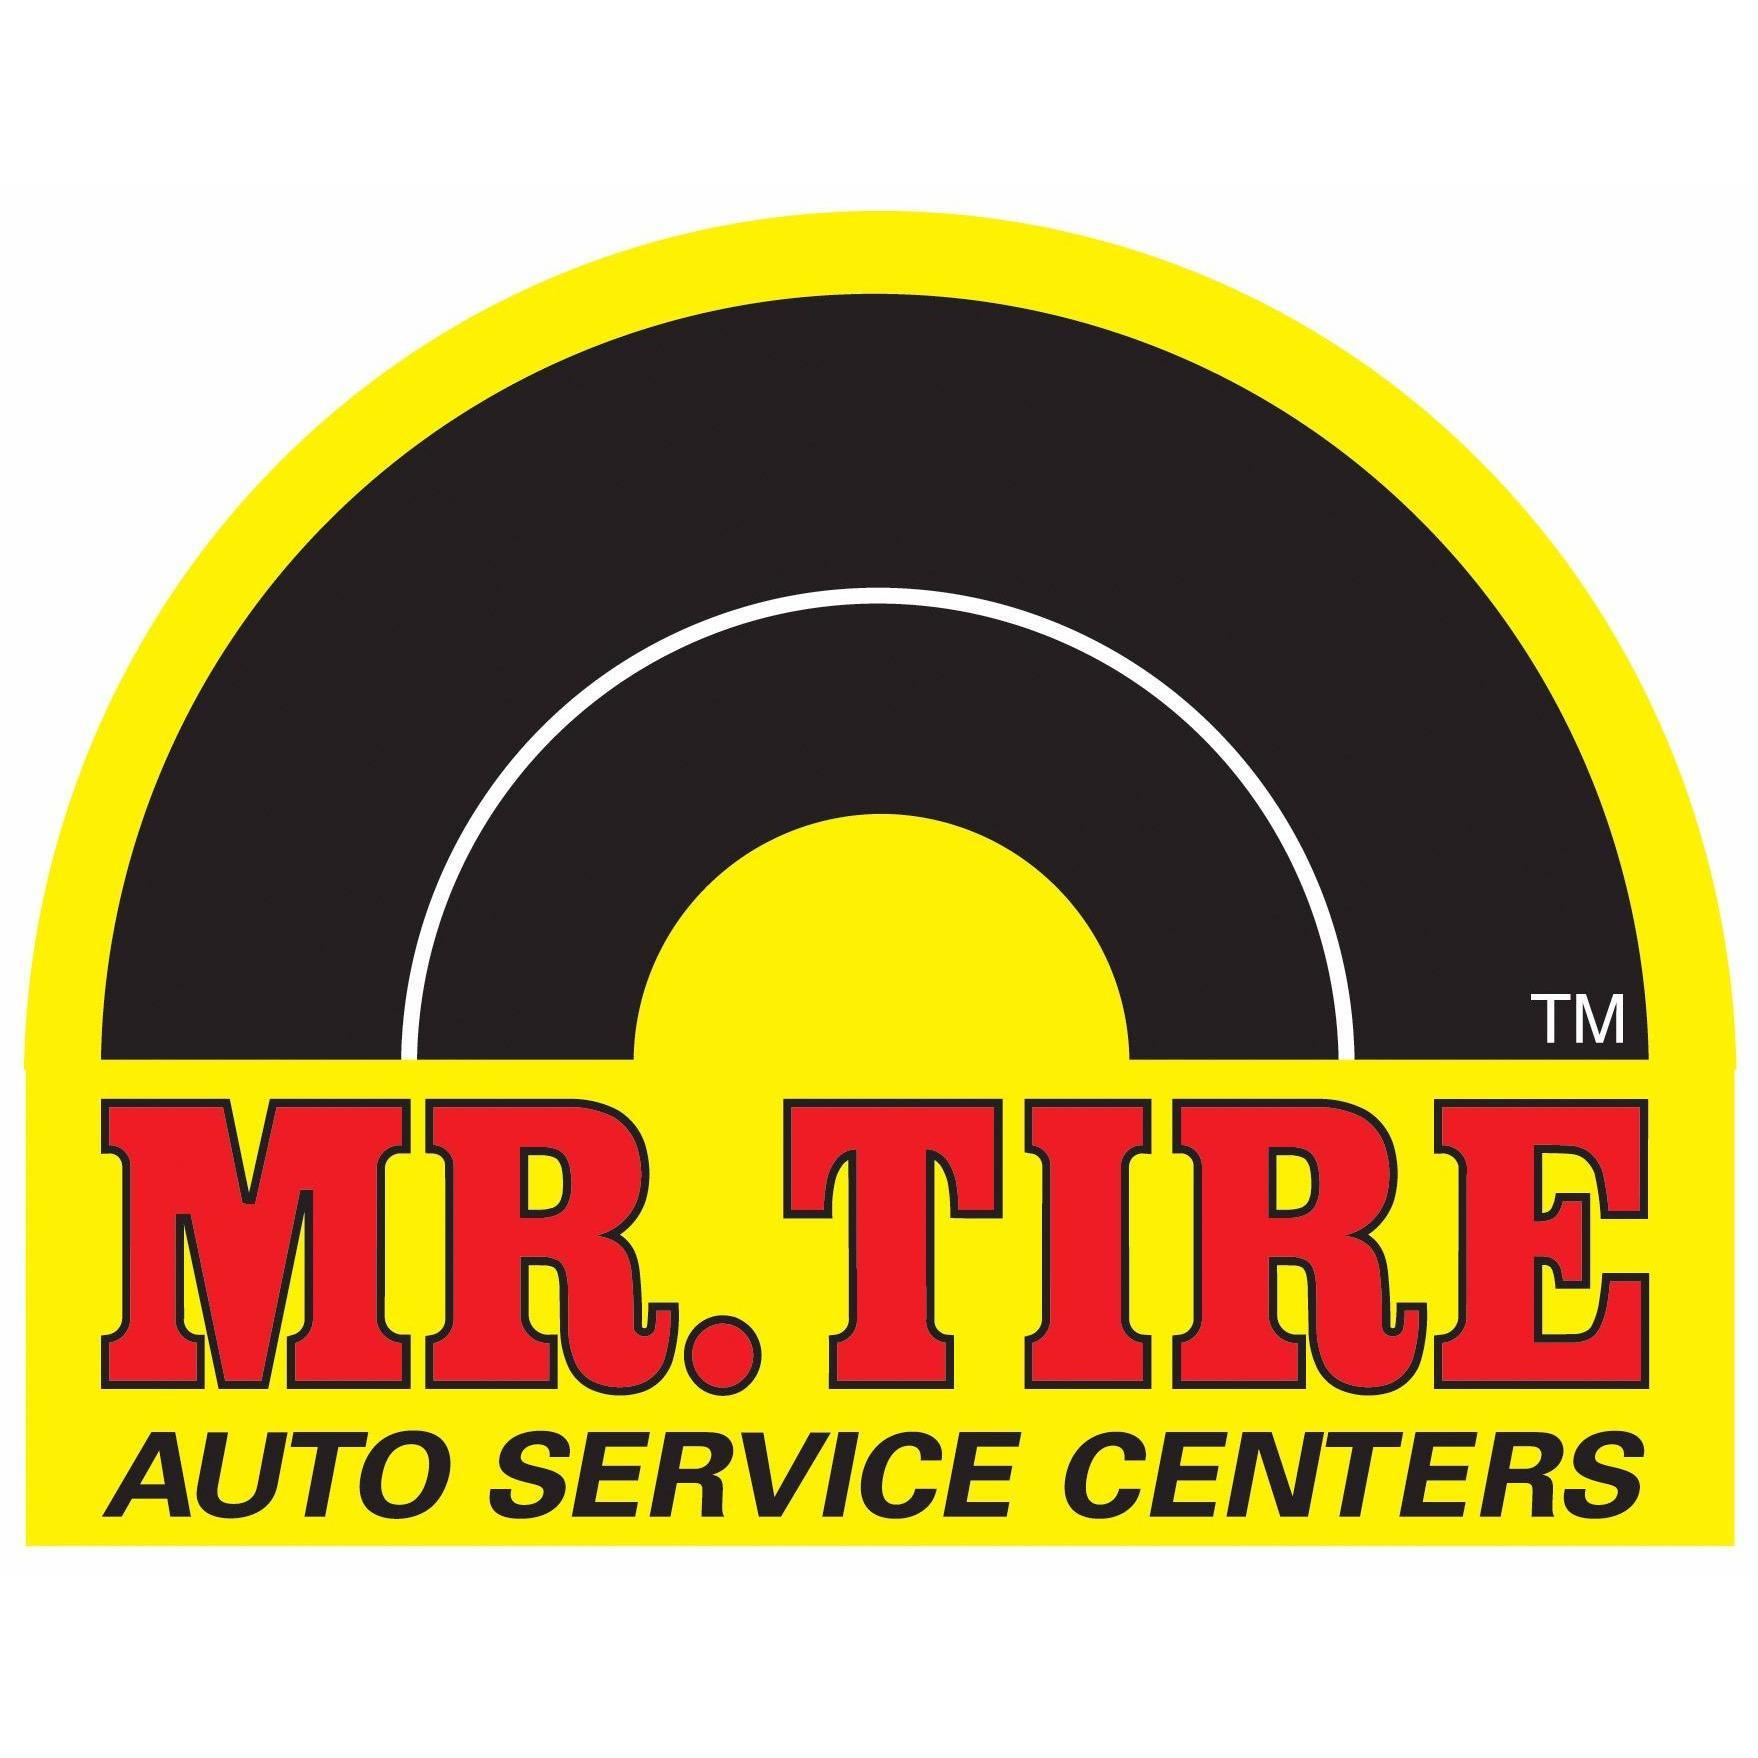 Mr Tire Auto Service Centers - Hickory, NC - Tires & Wheel Alignment